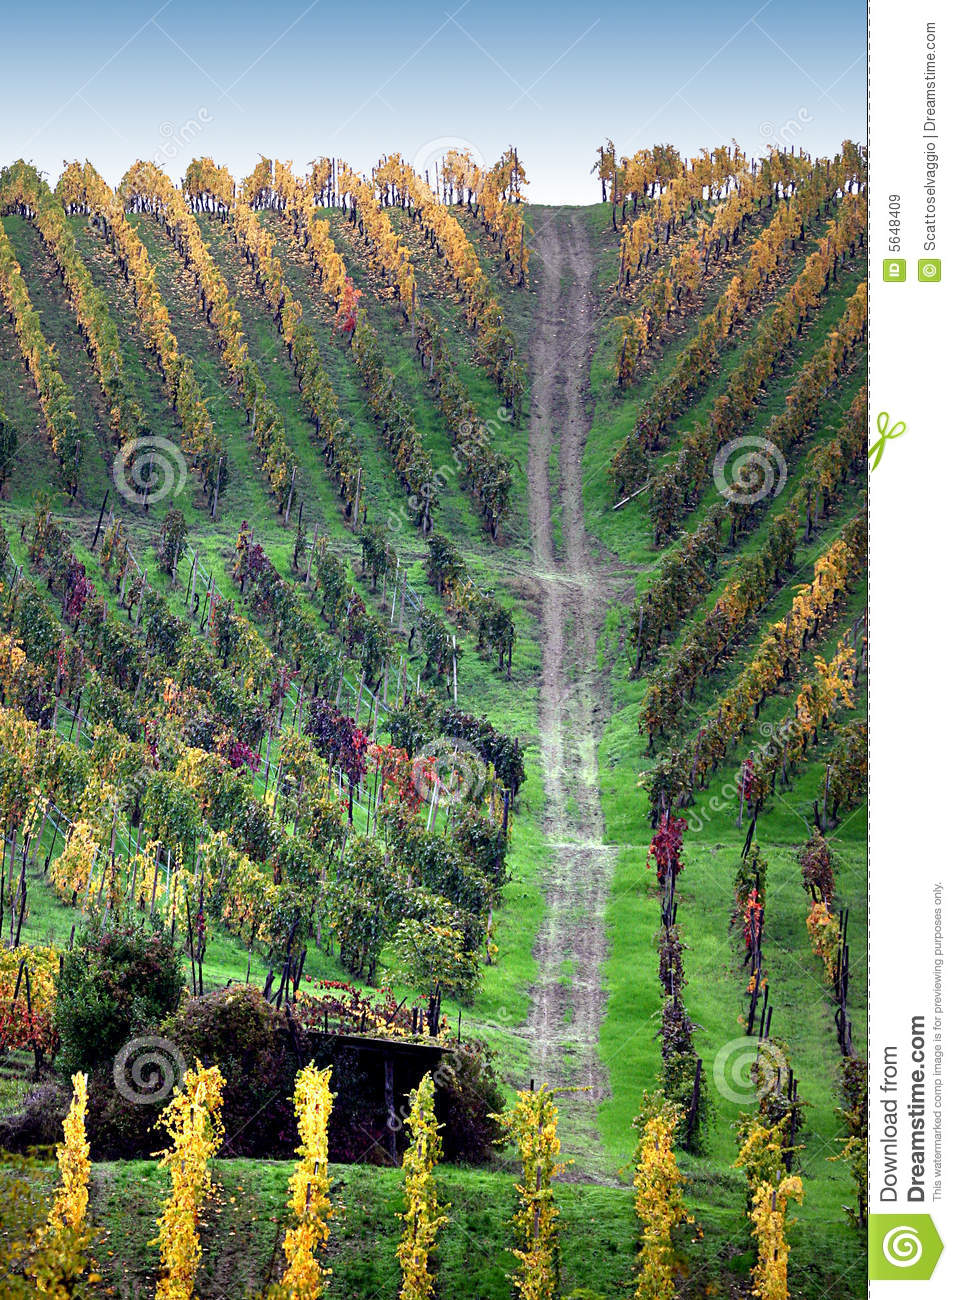 Path in the colorful vine. Colors and drawings of autumn vineyards in Torricella Verzate, Oltrepo pavese, Pavia, Italy.